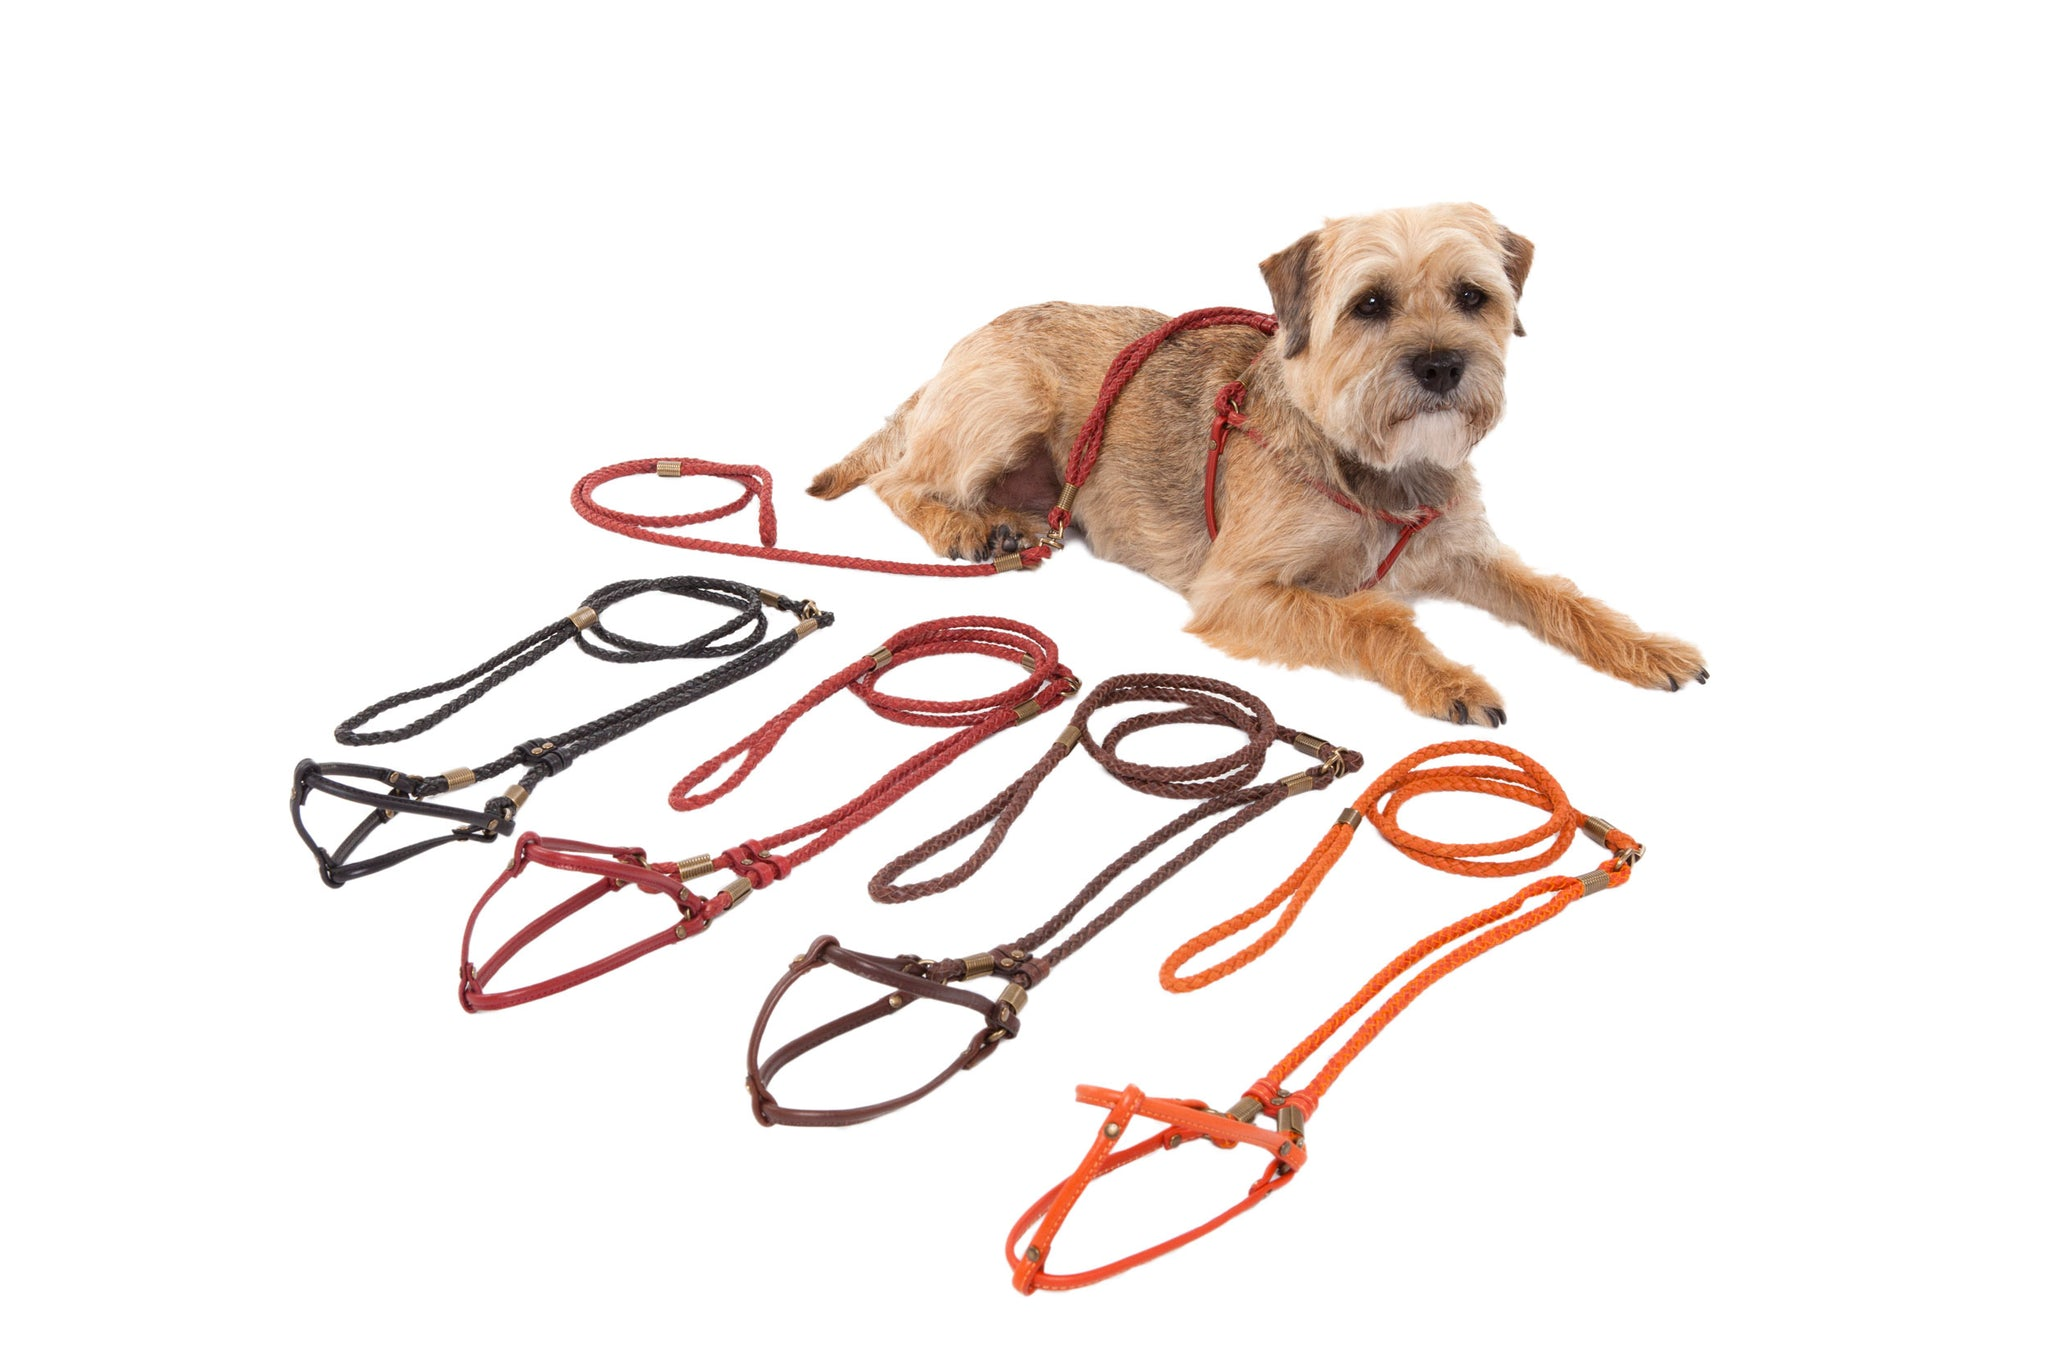 Braided & Flat Leather Step-In Harness - All-in-One Lead & Harness - 4 Color Options